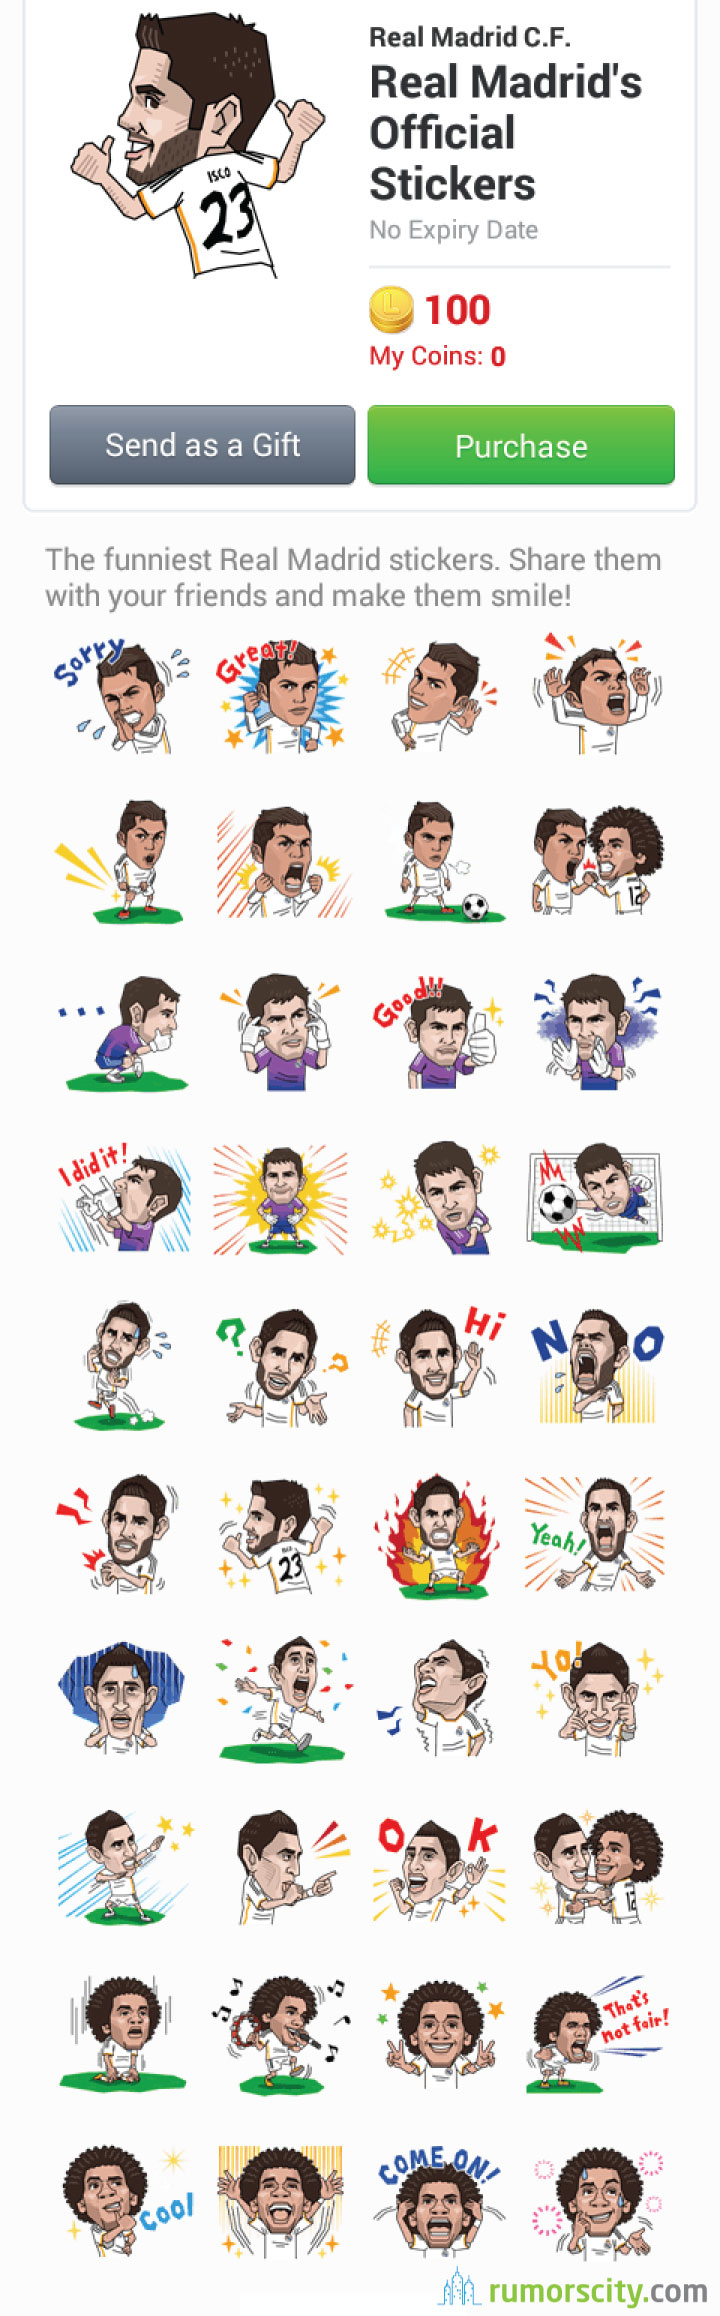 Real-Madrids-Official-Line-Stickers-in-Thailand-Paid-02